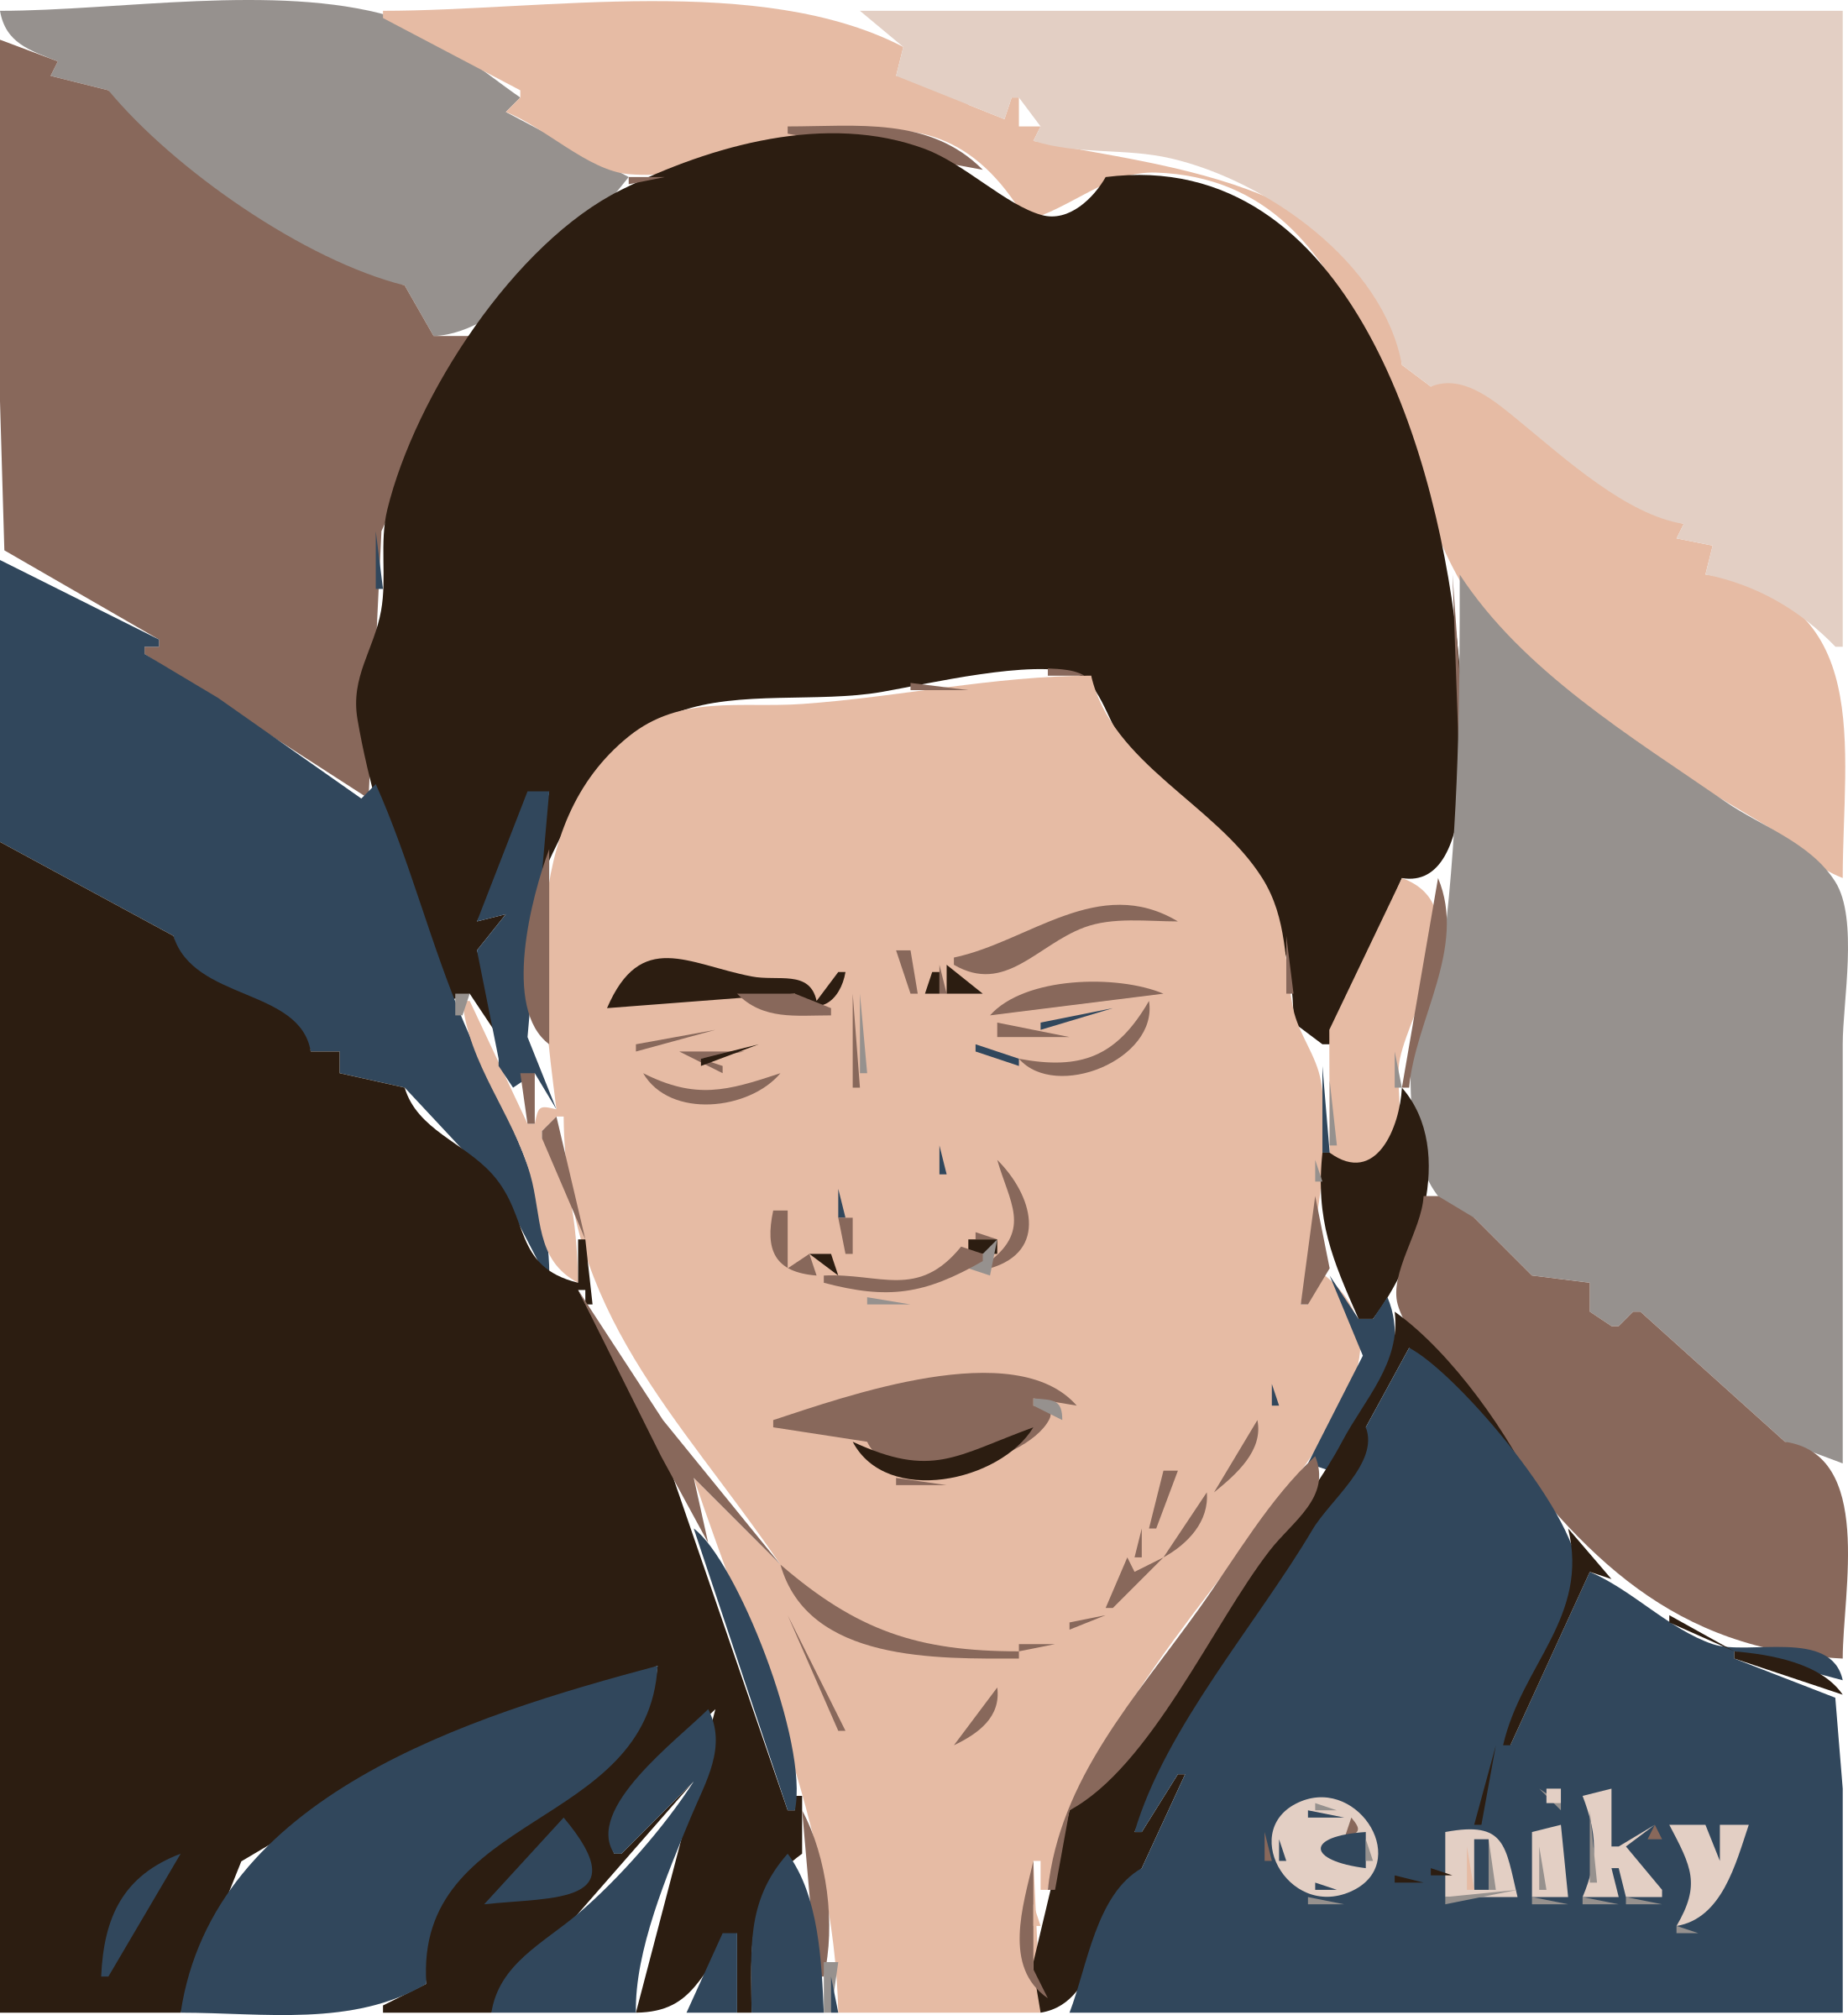 Shahrukh clipart #15, Download drawings